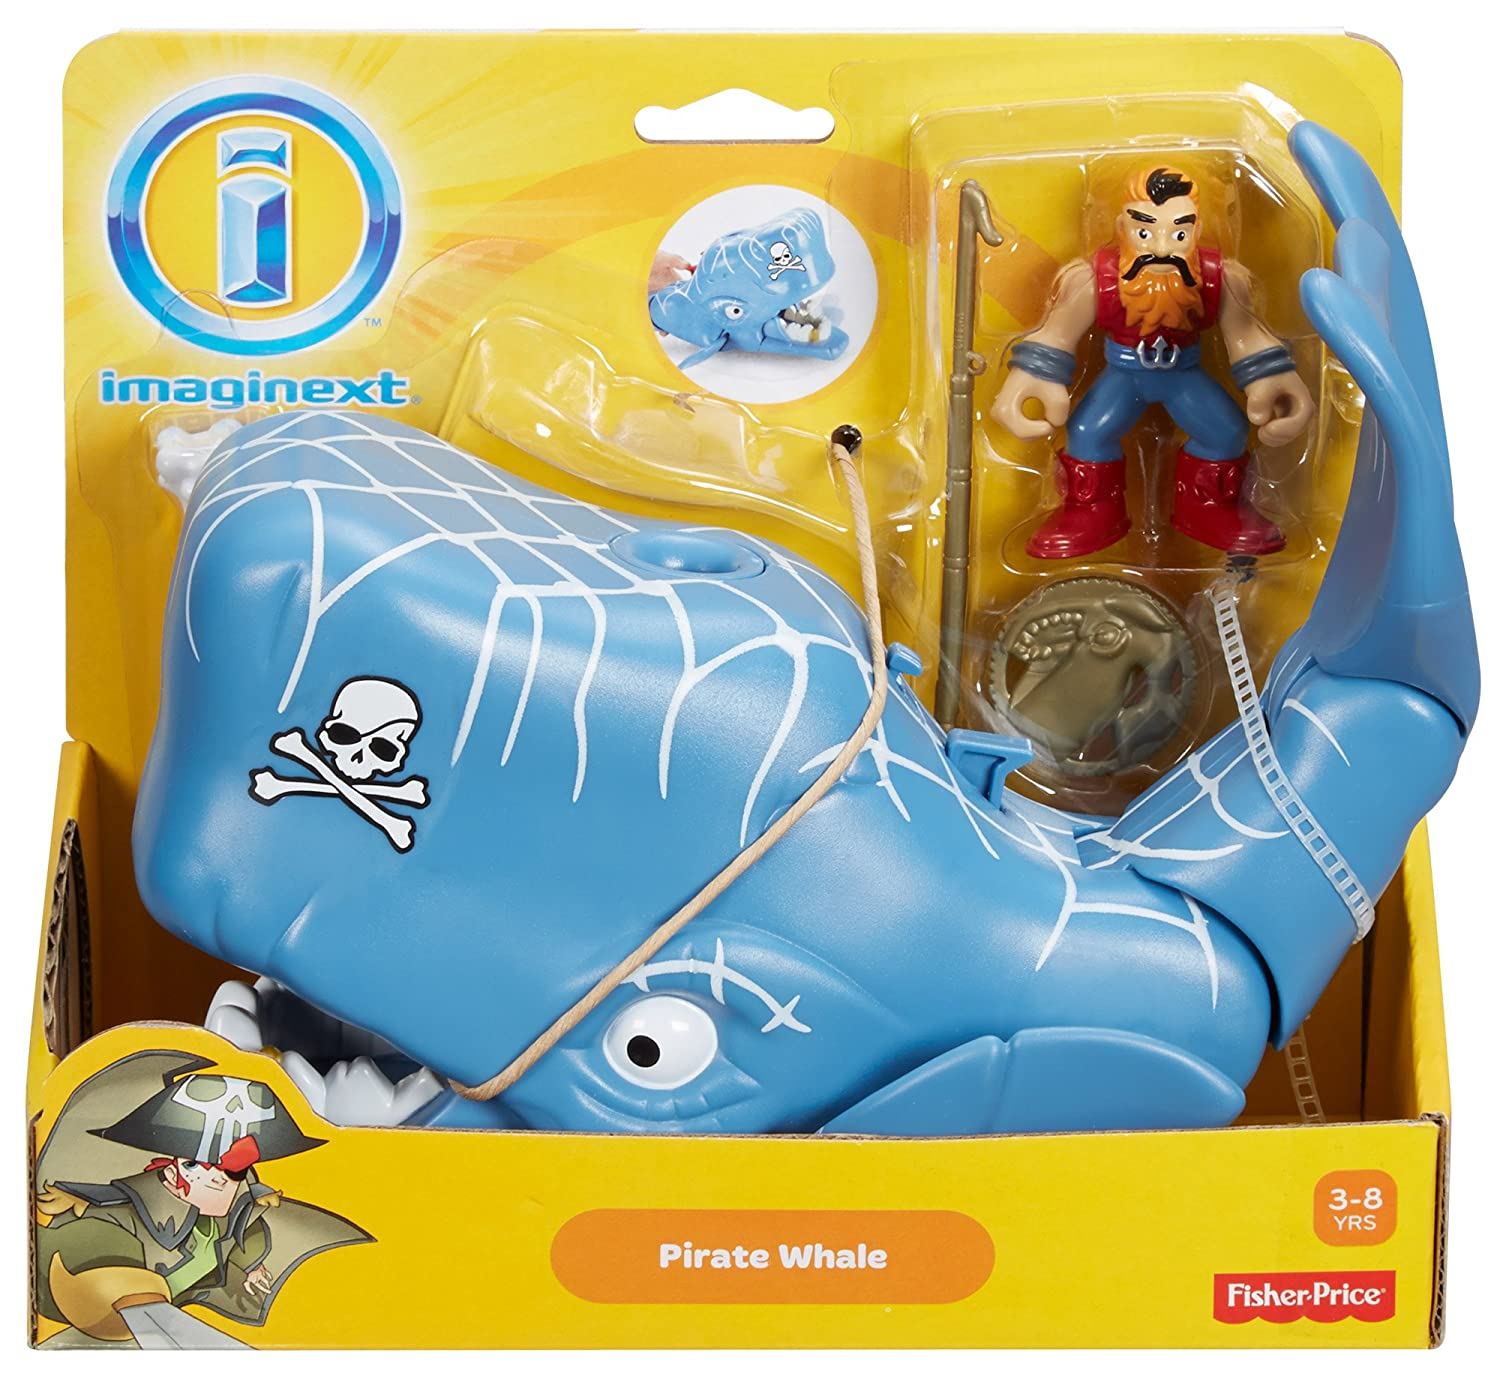 Amazon.com: Fisher-Price Imaginext Pirate Whale: Toys & Games